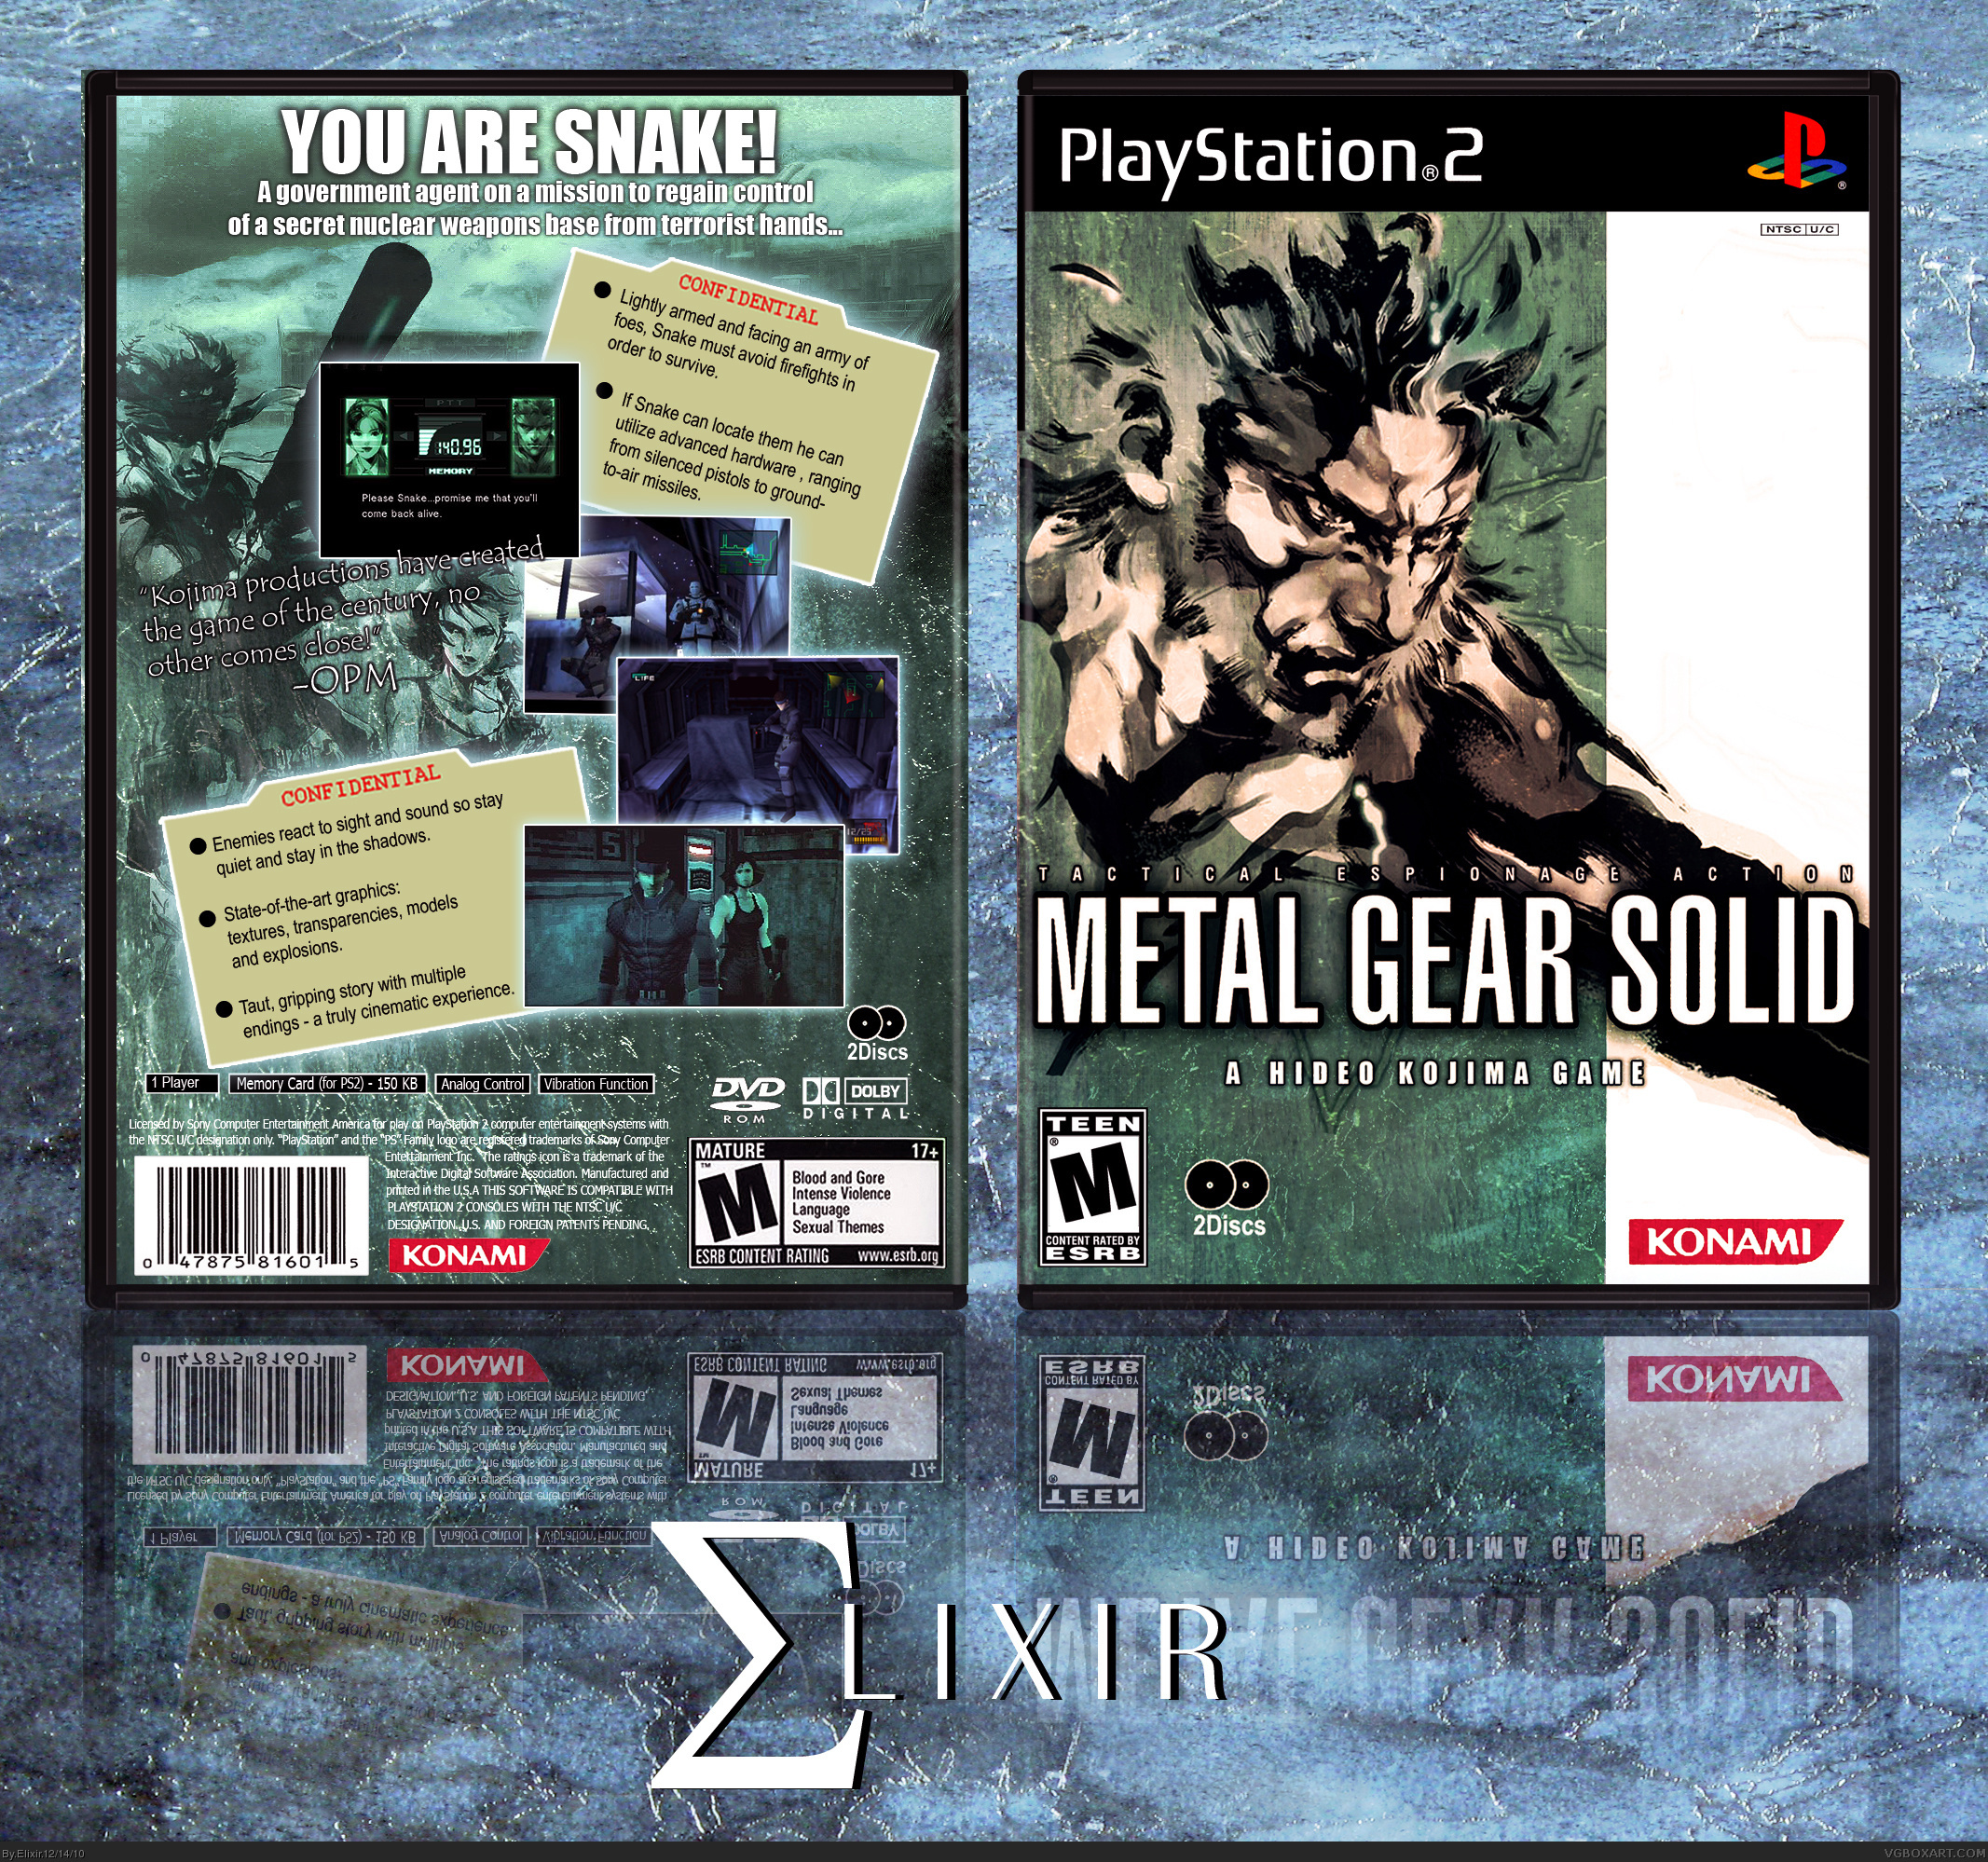 Metal Gear Solid PlayStation Box Art Cover By Elixir